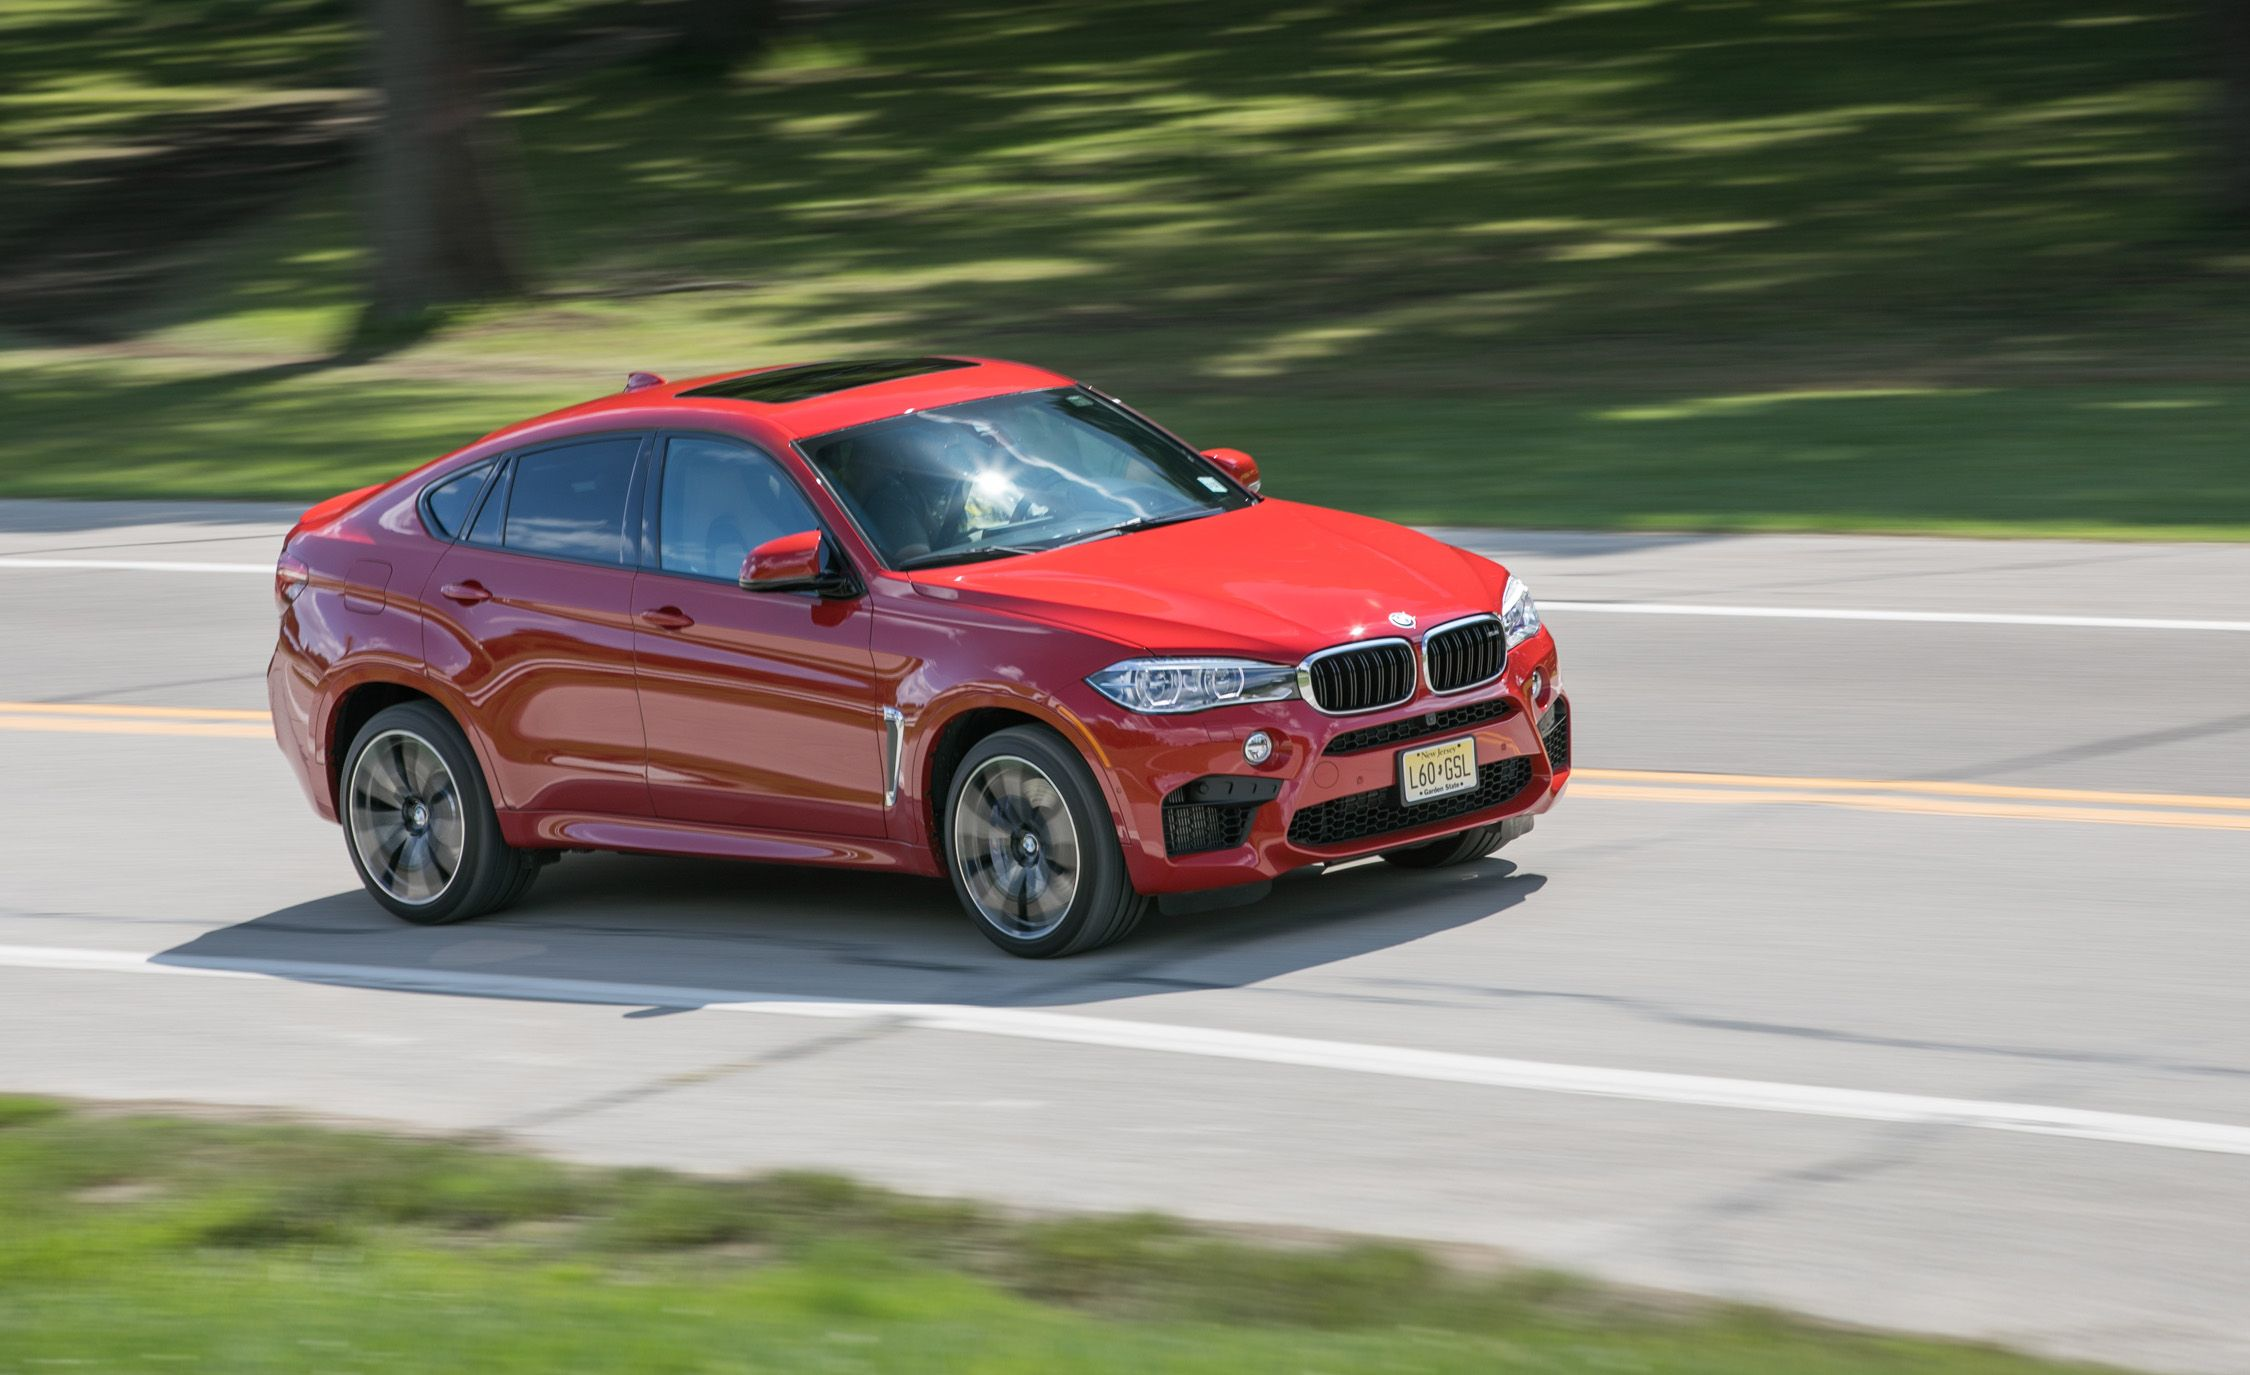 BMW X6 M Reviews | BMW X6 M Price, Photos, and Specs | Car and Driver